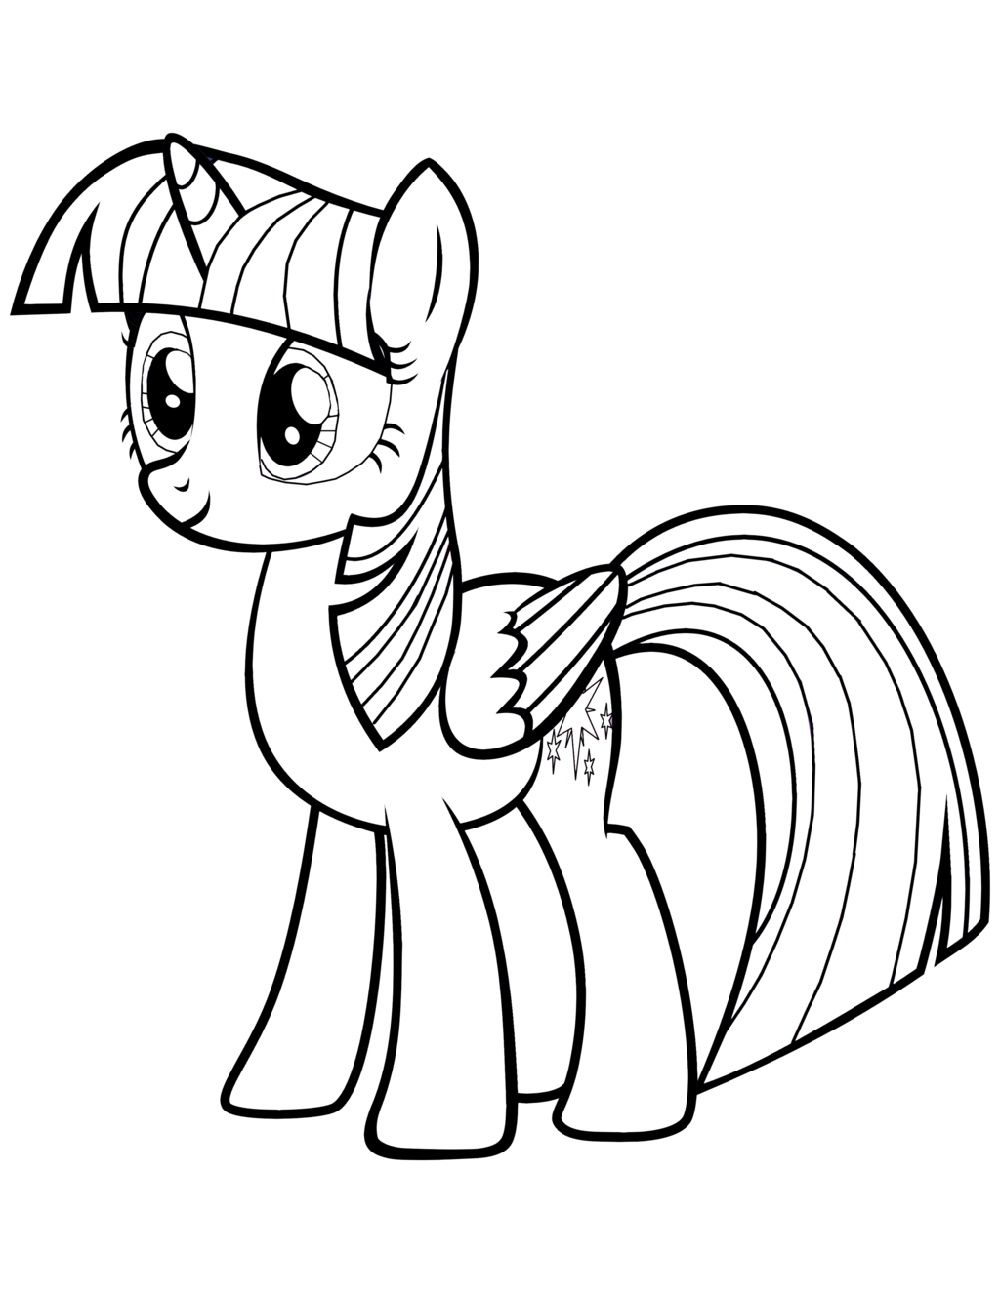 alicorn mlp coloring page alicorn twilight sketch up by exoticlithe on deviantart mlp coloring alicorn page